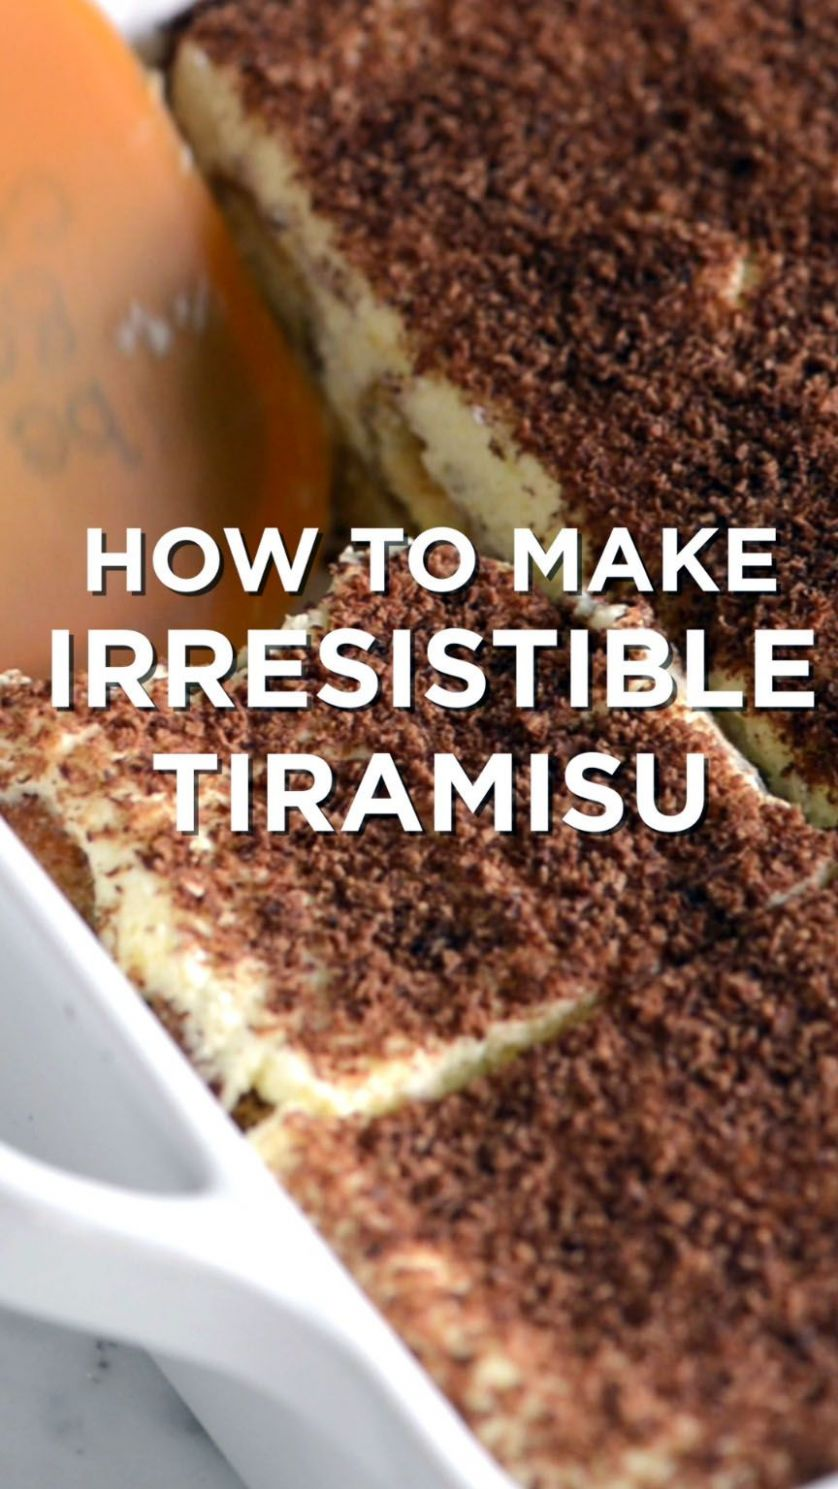 Sweet dessert recipes hard from top chefs | Desserts, Tiramisu ..